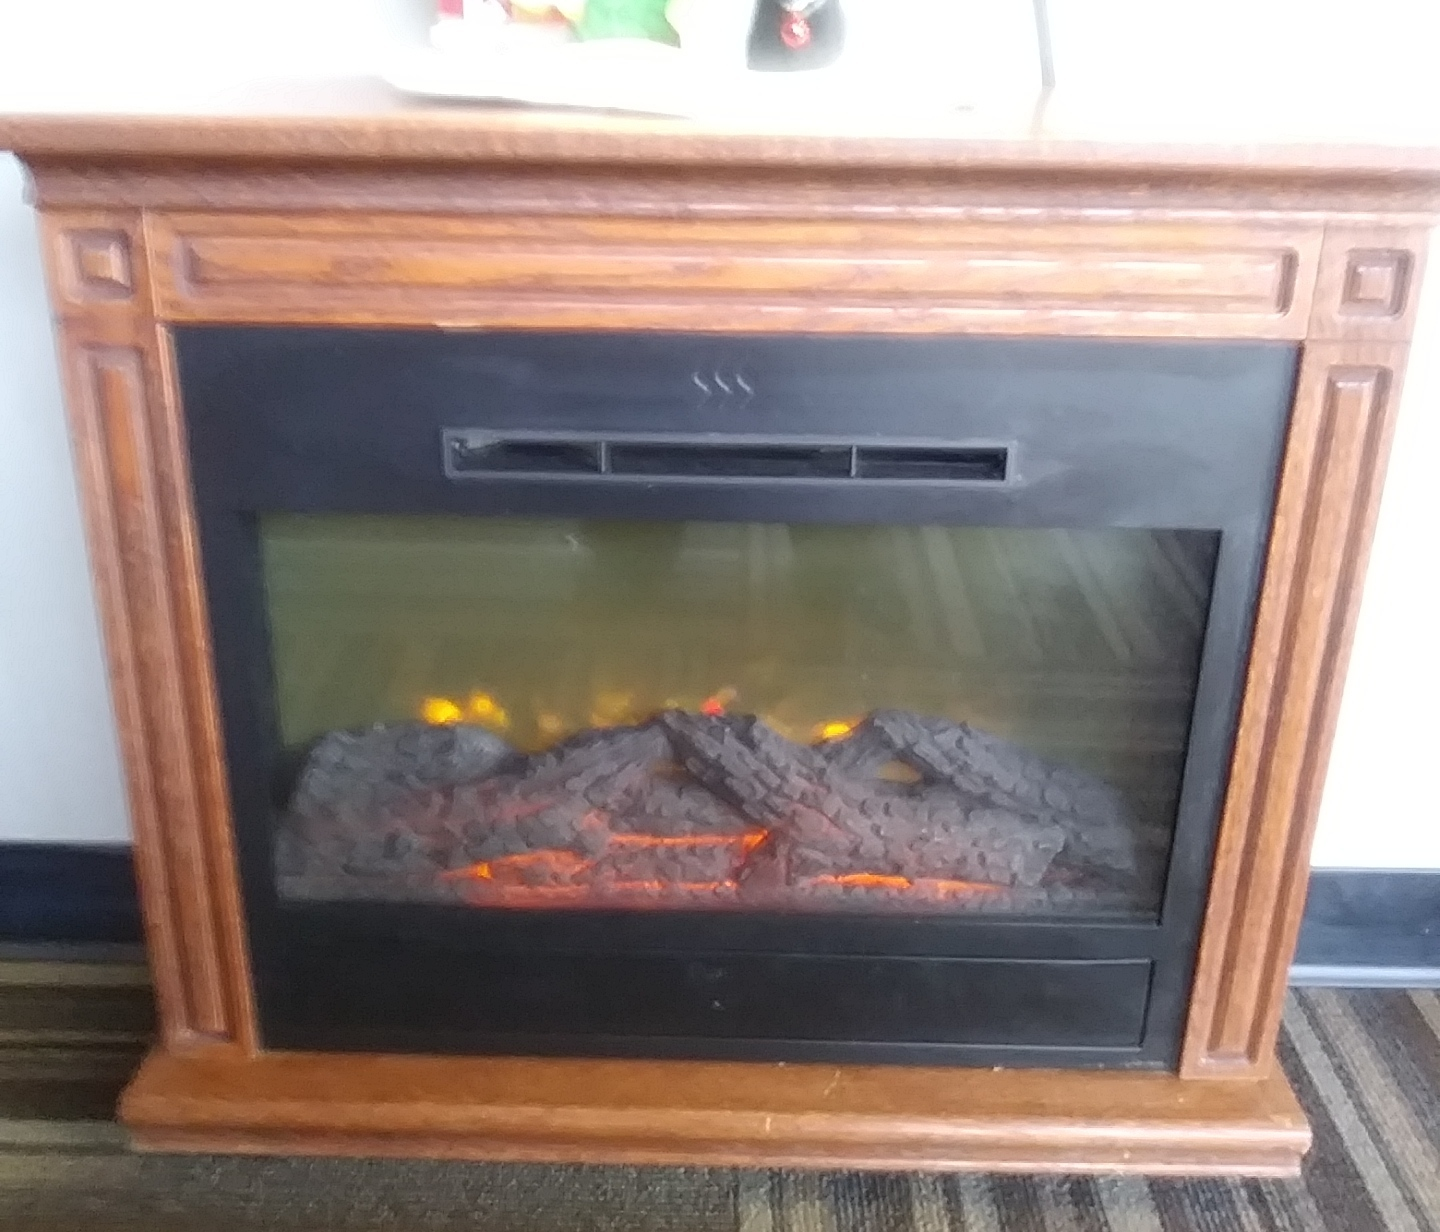 COMMERCIAL FIREPLACE/HEATER